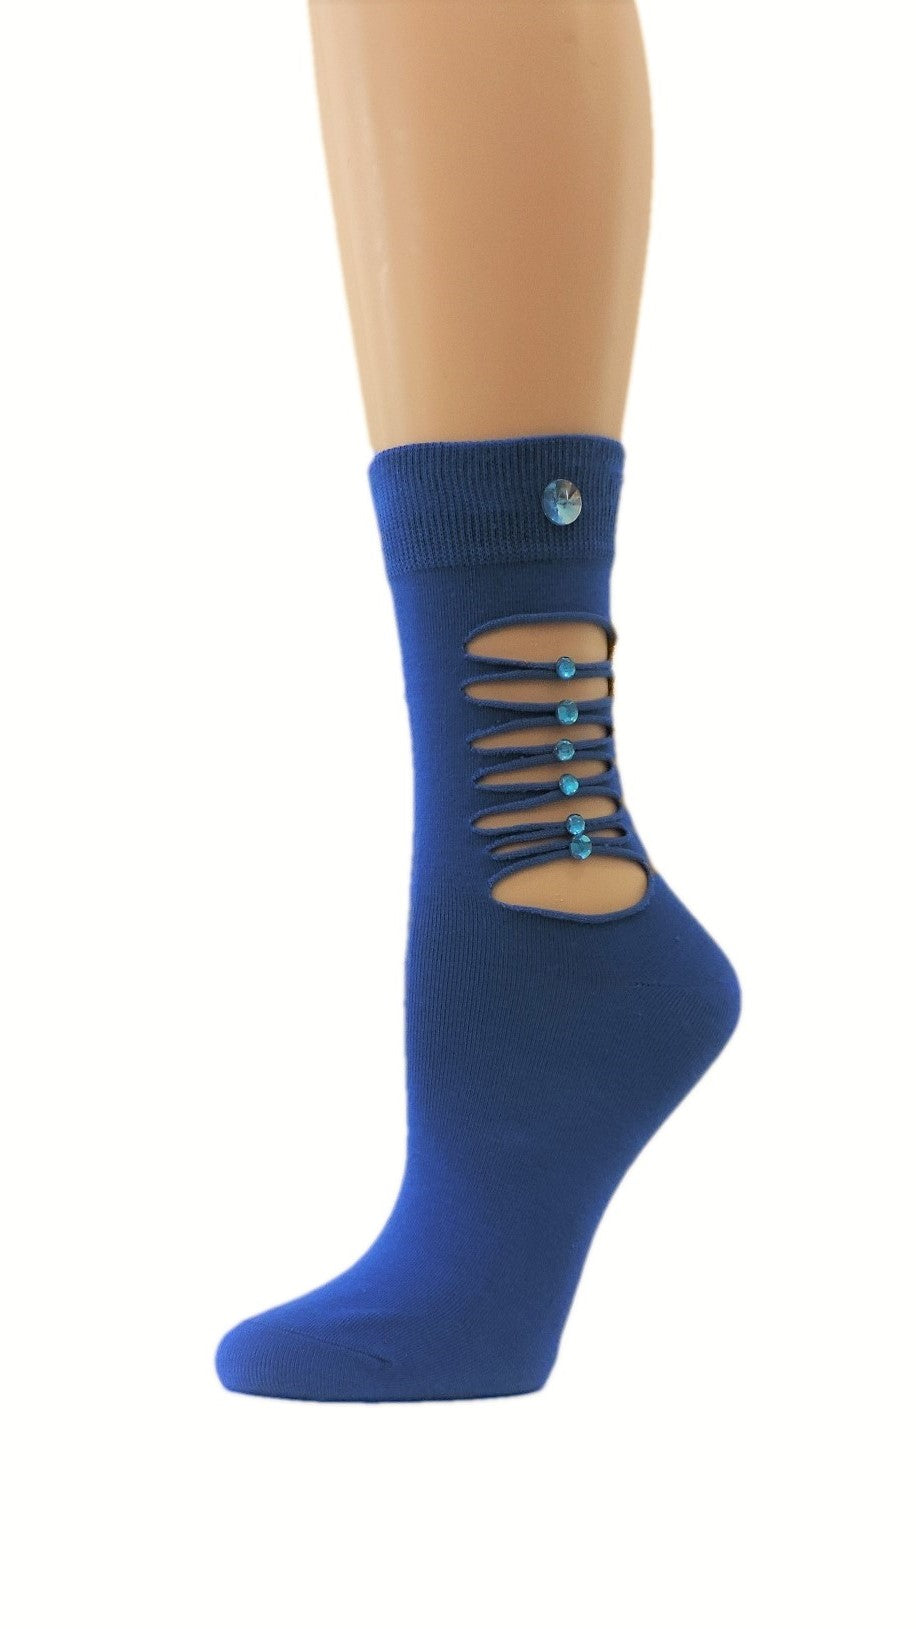 Ripped Blue Custom Fashion Socks with crystals - Global Trendz Fashion®